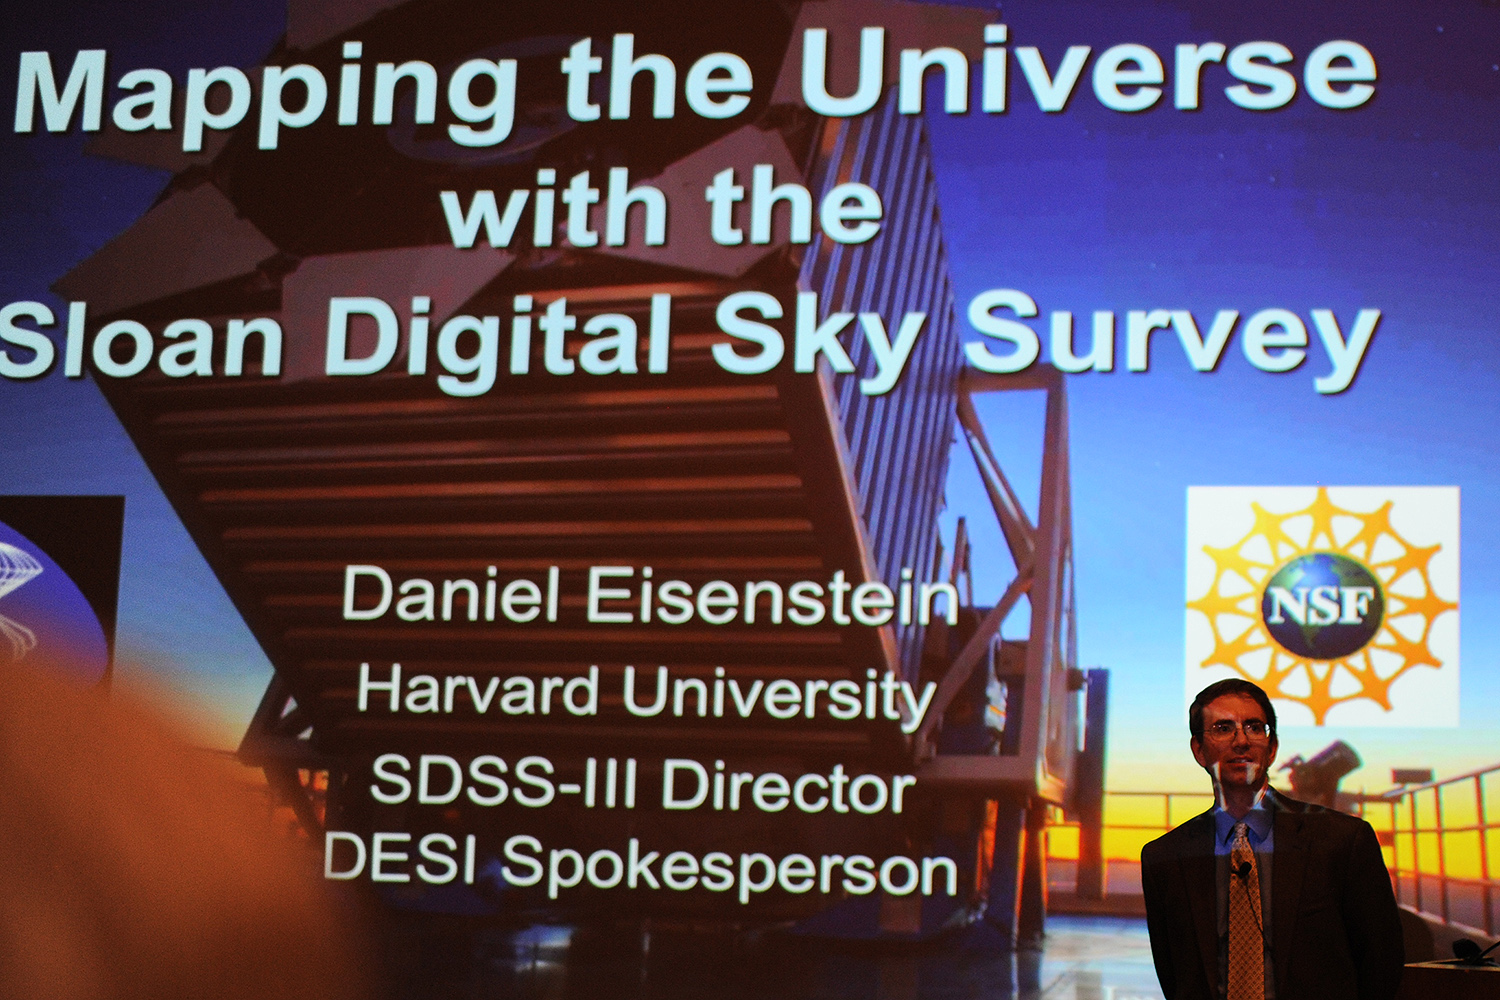 Eisenstein has served as the Director of the Sloan Digital Sky Survey III, the chair of the National Science Foundation Astronomy Portfolio Review committee, and is involved in the instrument teams of various new telescopes. He has been recognized repeatedly for his achievements in the field, including the prestigious Shaw Prize in Astronomy, awarded in 2014, elected to the National Academy of Sciences, and being named a Simons Investigator in 2016. (Photos by Caroline Kravitz '19)